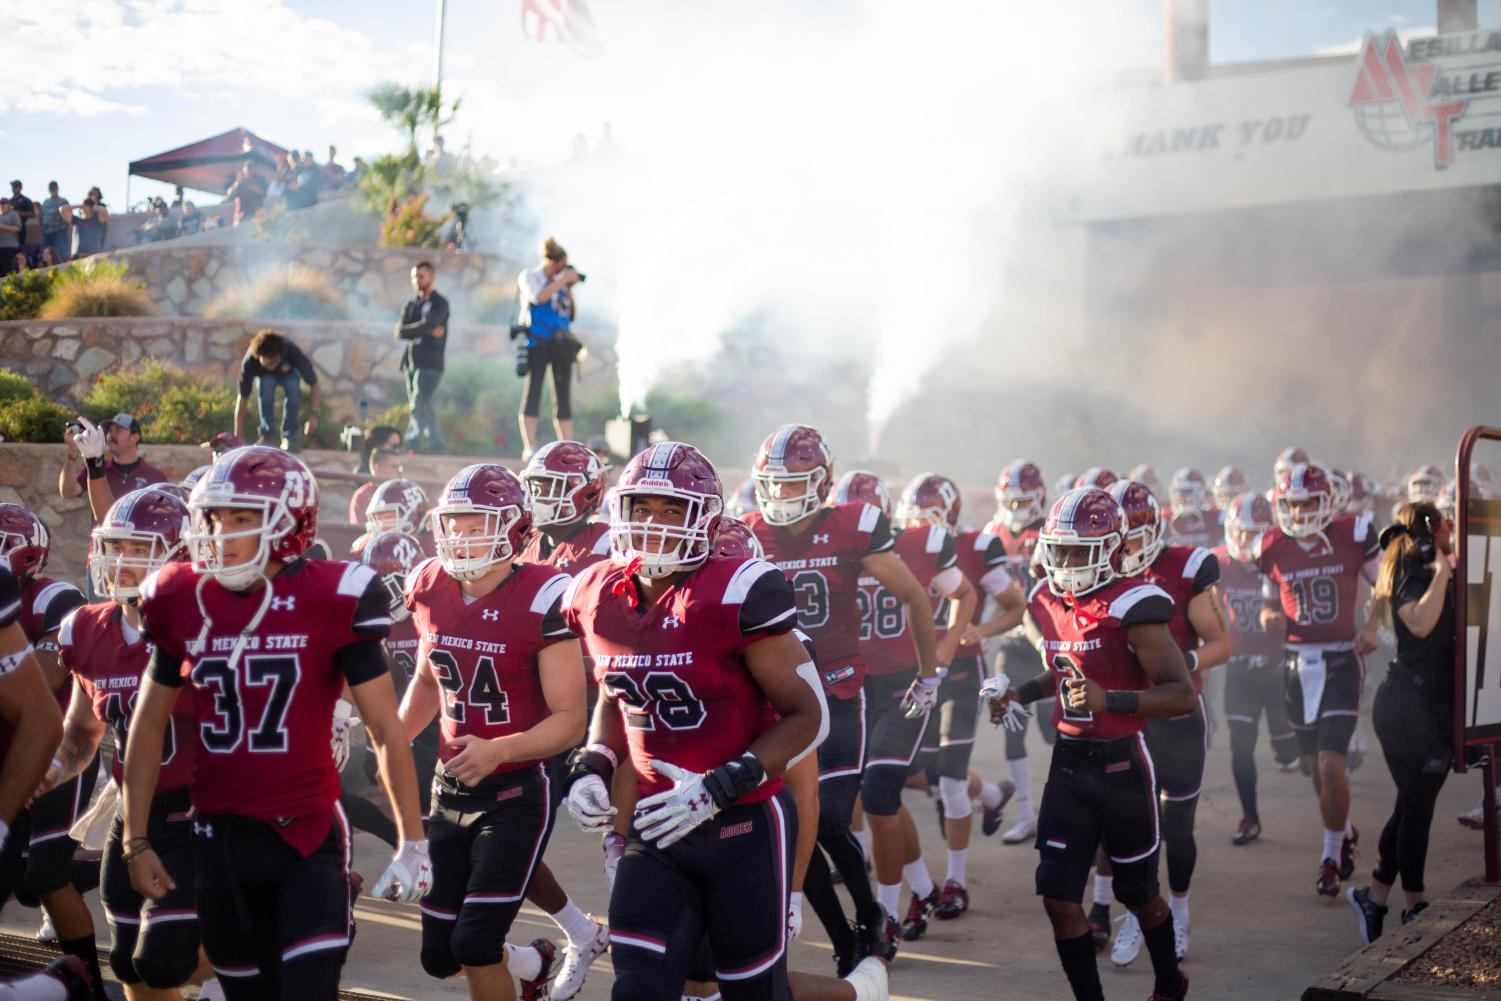 There are just less than two hours until New Mexico State take on the UTEP Miners in the 96th ever Battle of I-10.